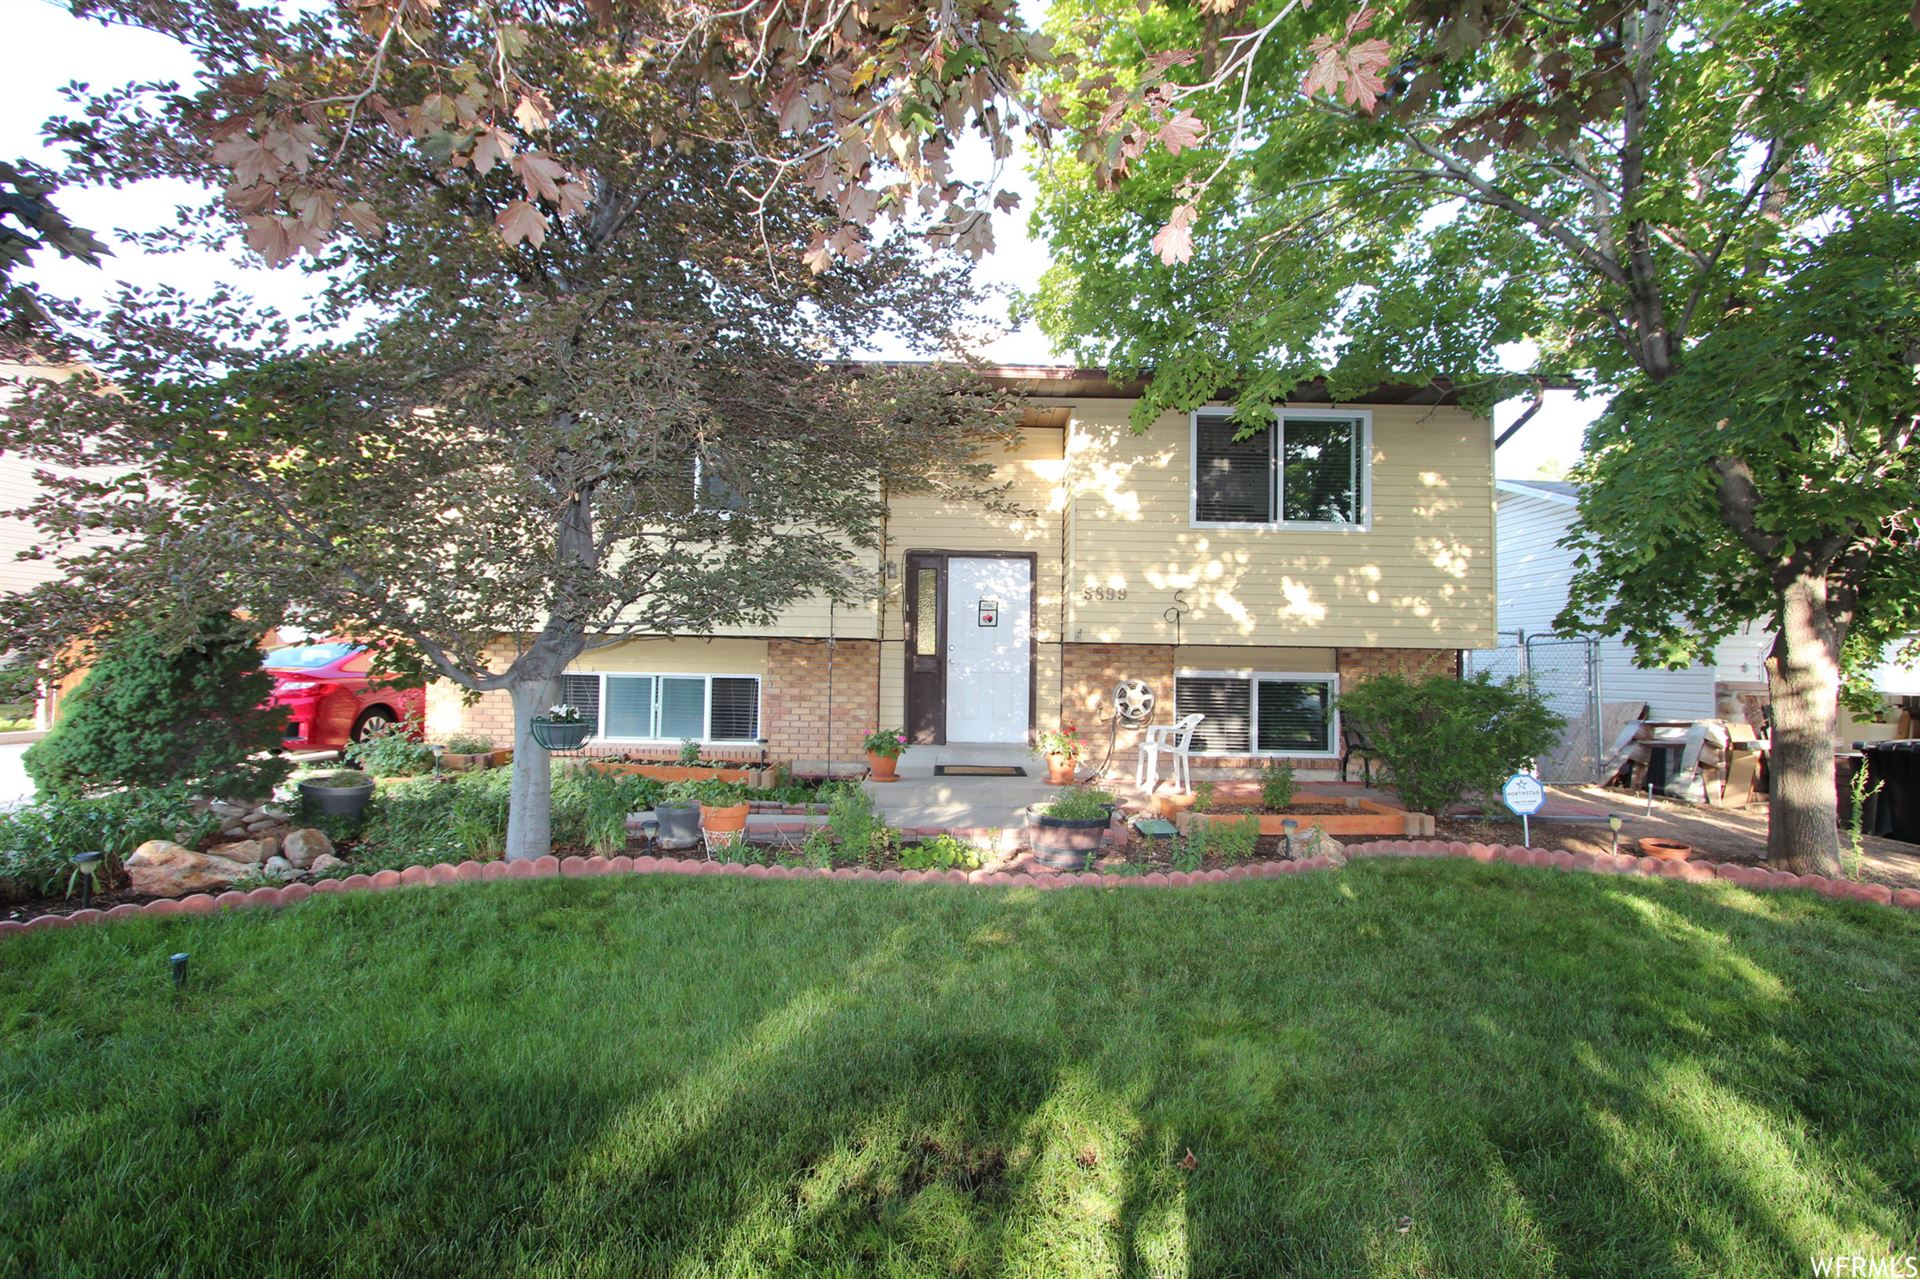 Photo of 5899 S COUNTRY HILLS DR #67, Taylorsville, UT 84123 (MLS # 1753176)